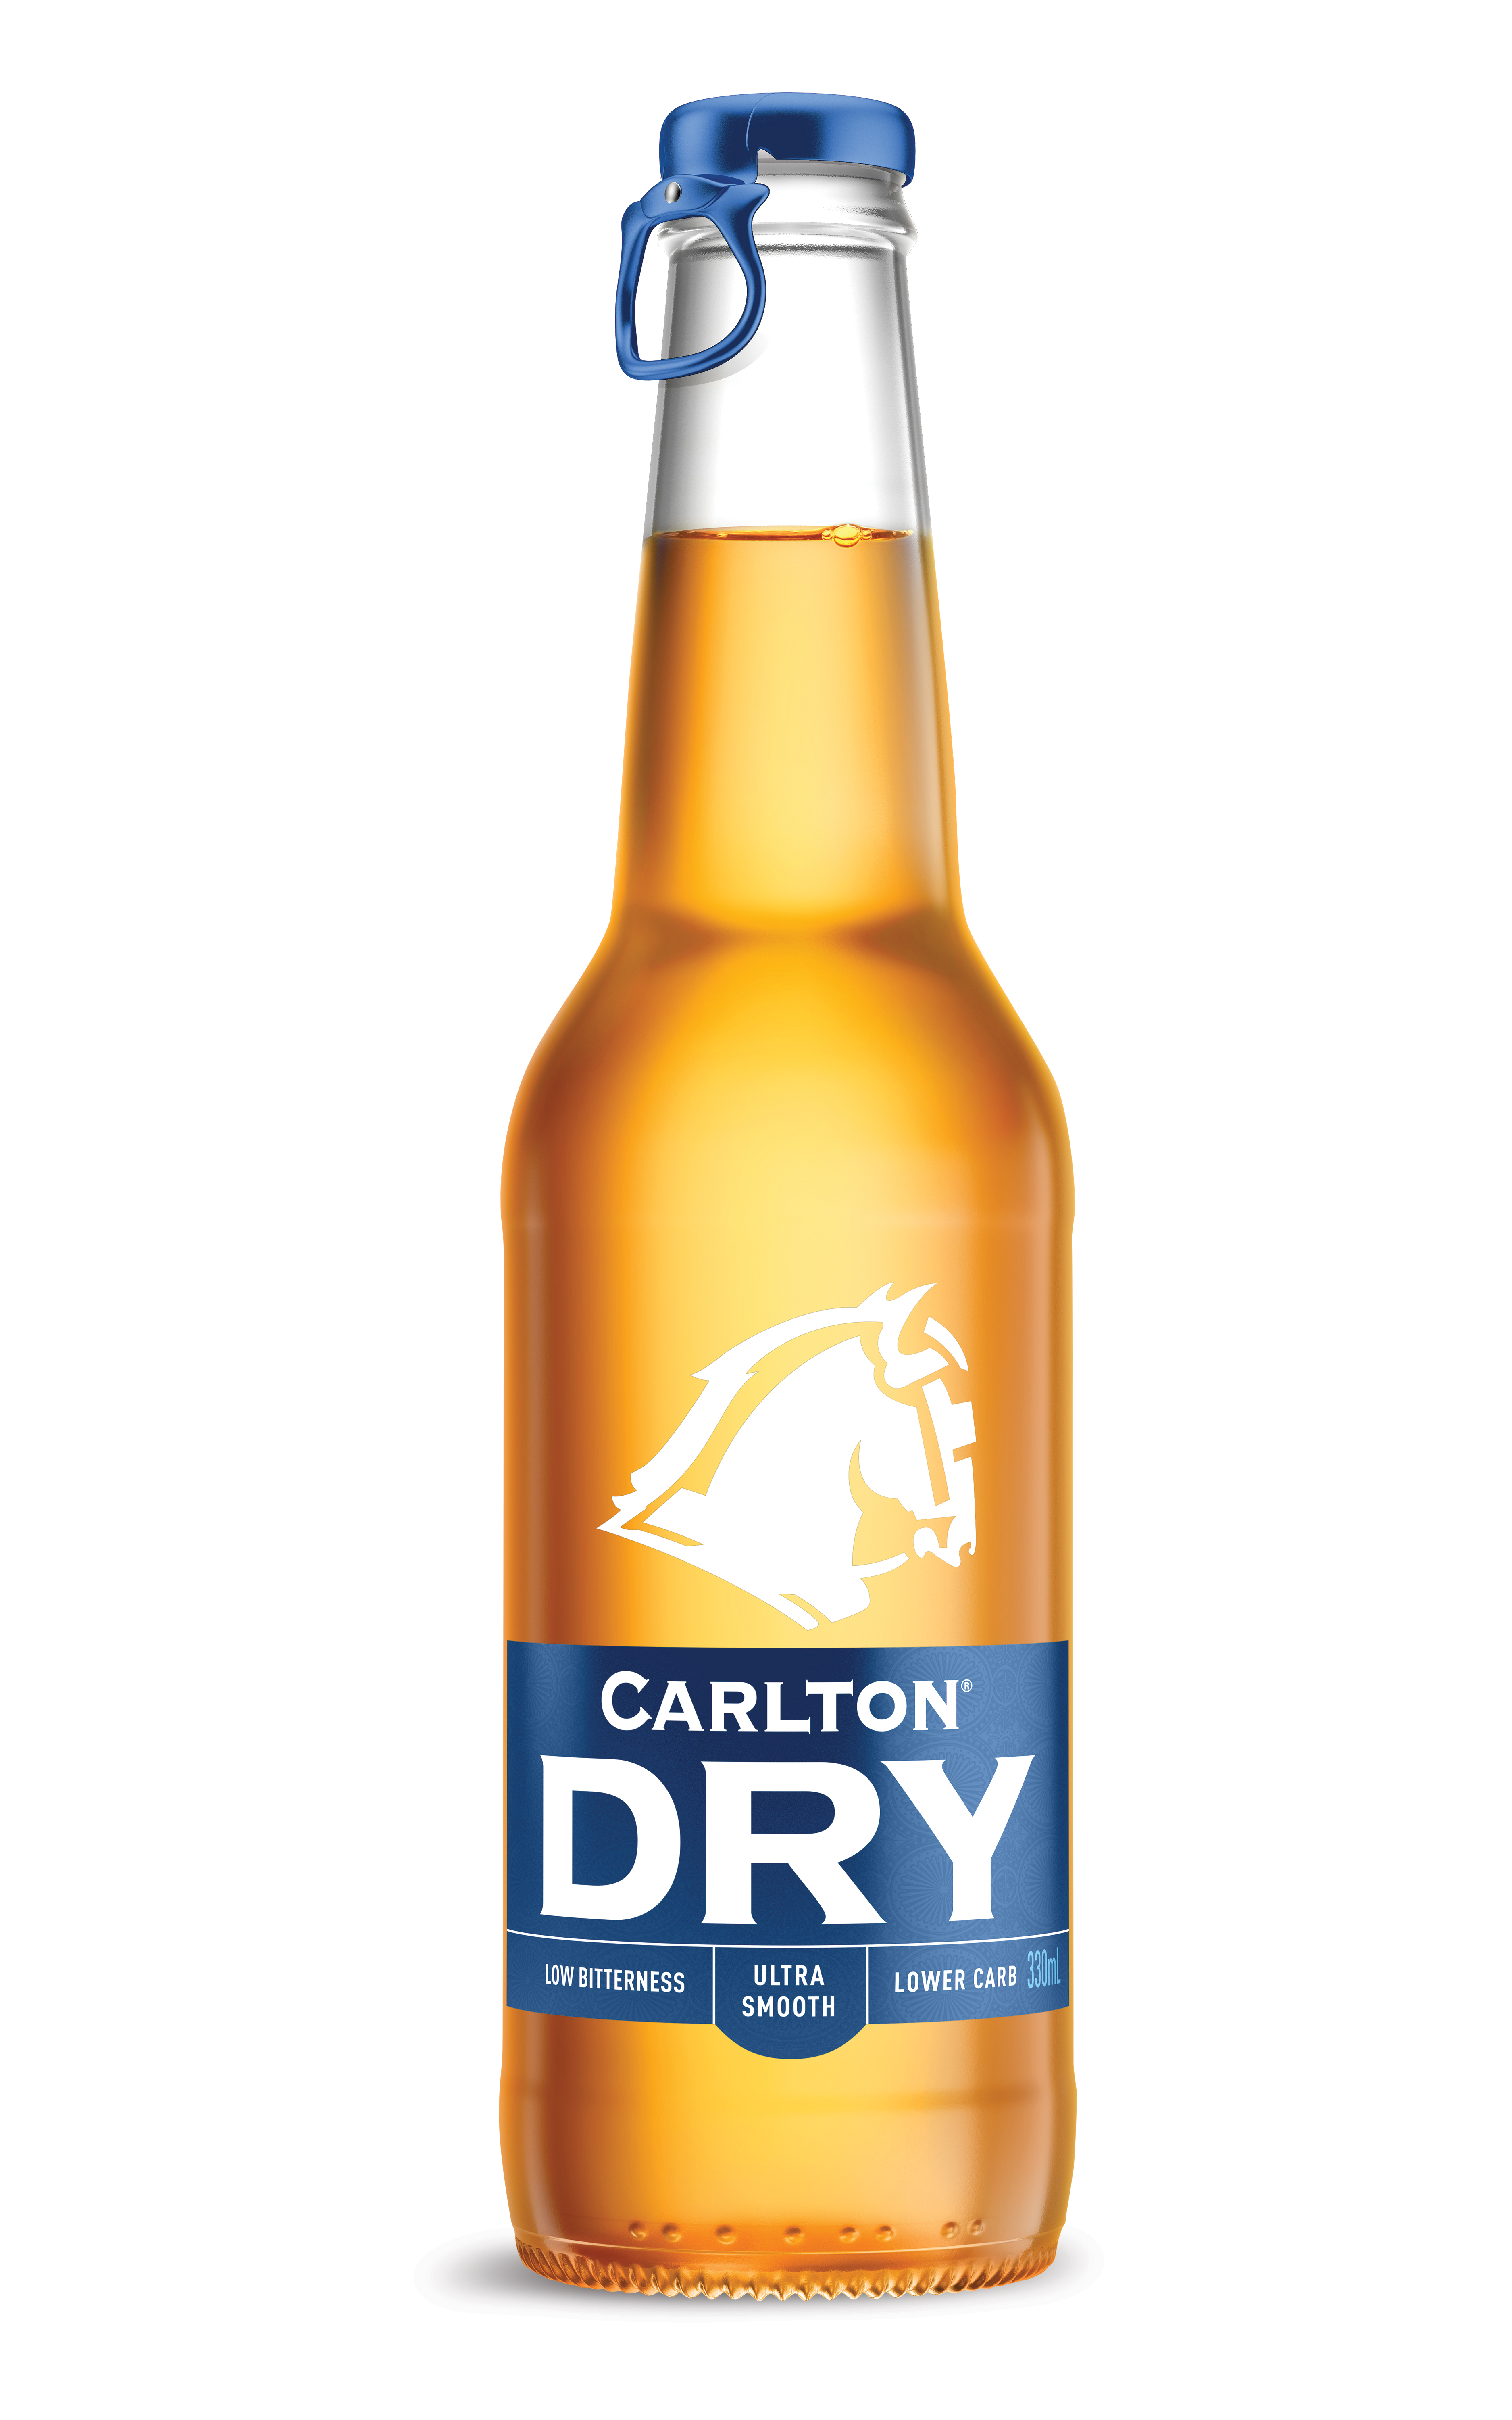 NEW PACKAGING FOR CARLTON DRY